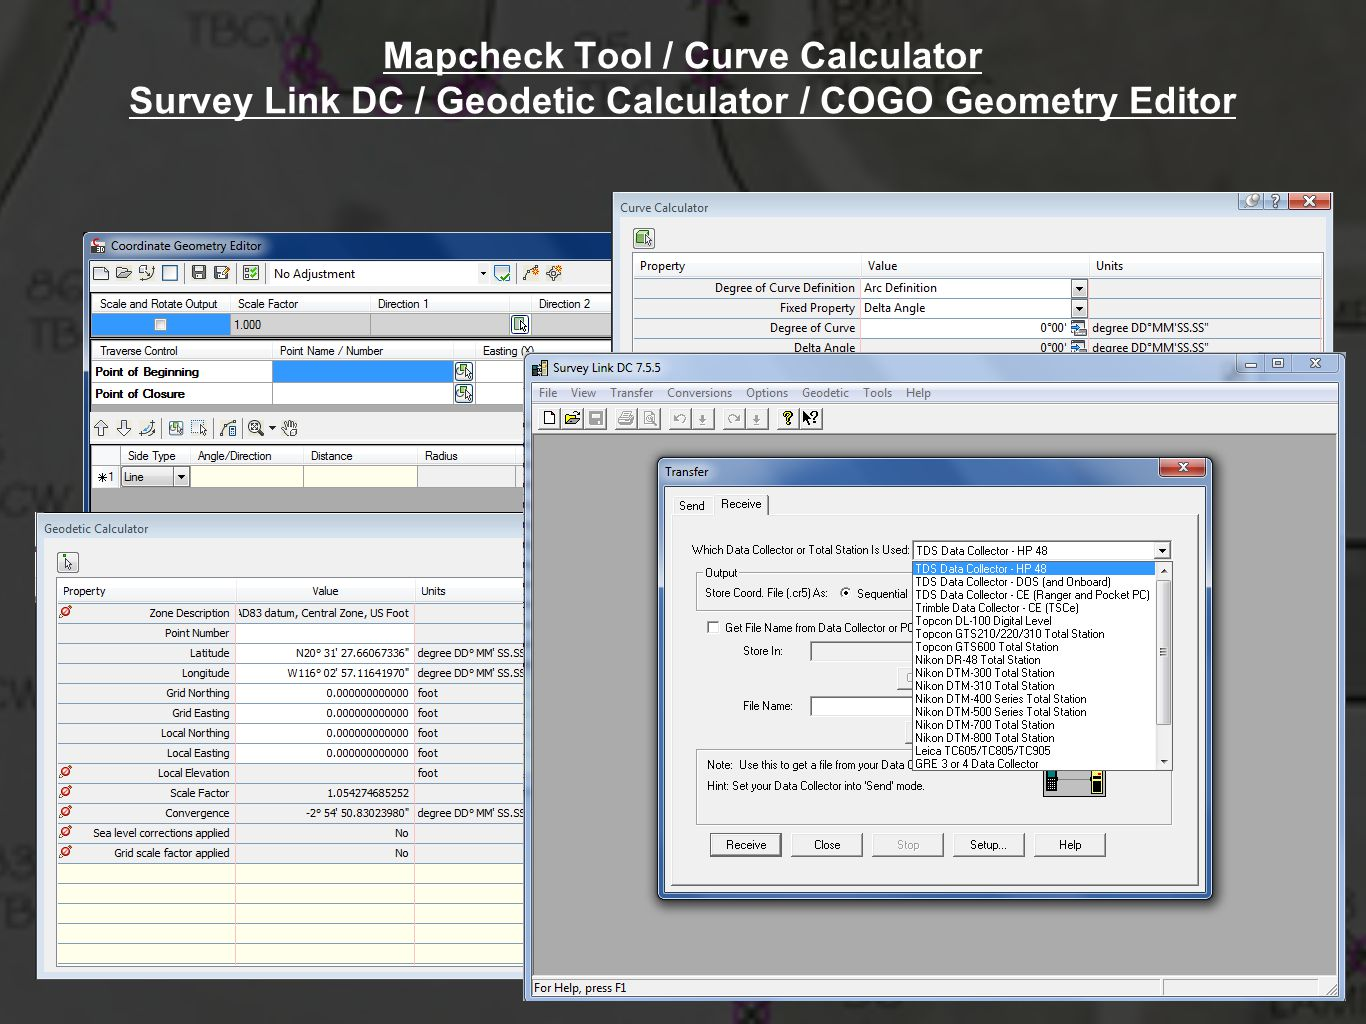 Mapcheck Tool / Curve Calculator Survey Link DC / Geodetic Calculator / COGO Geometry Editor